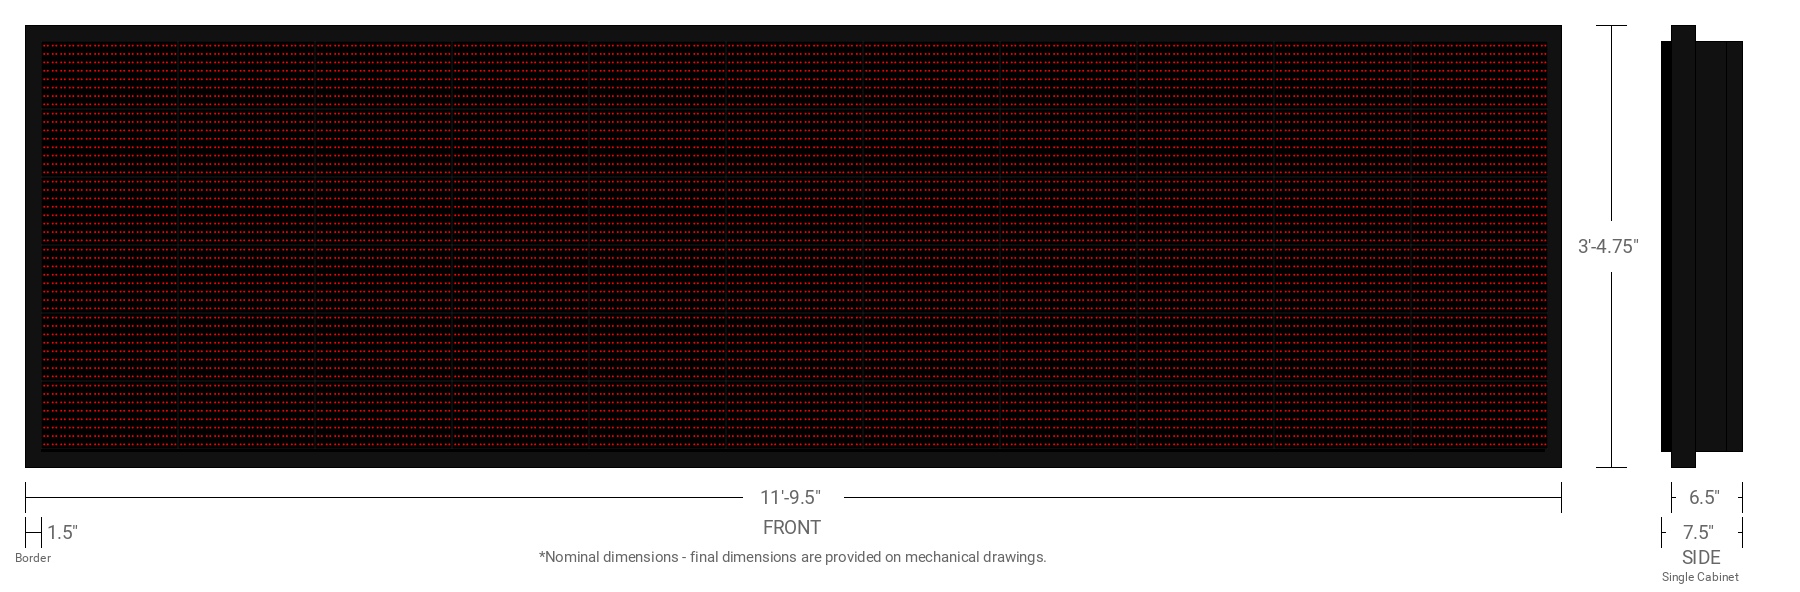 Polaris 20mm 48x176 Double Sided Grayscale Red LED Display